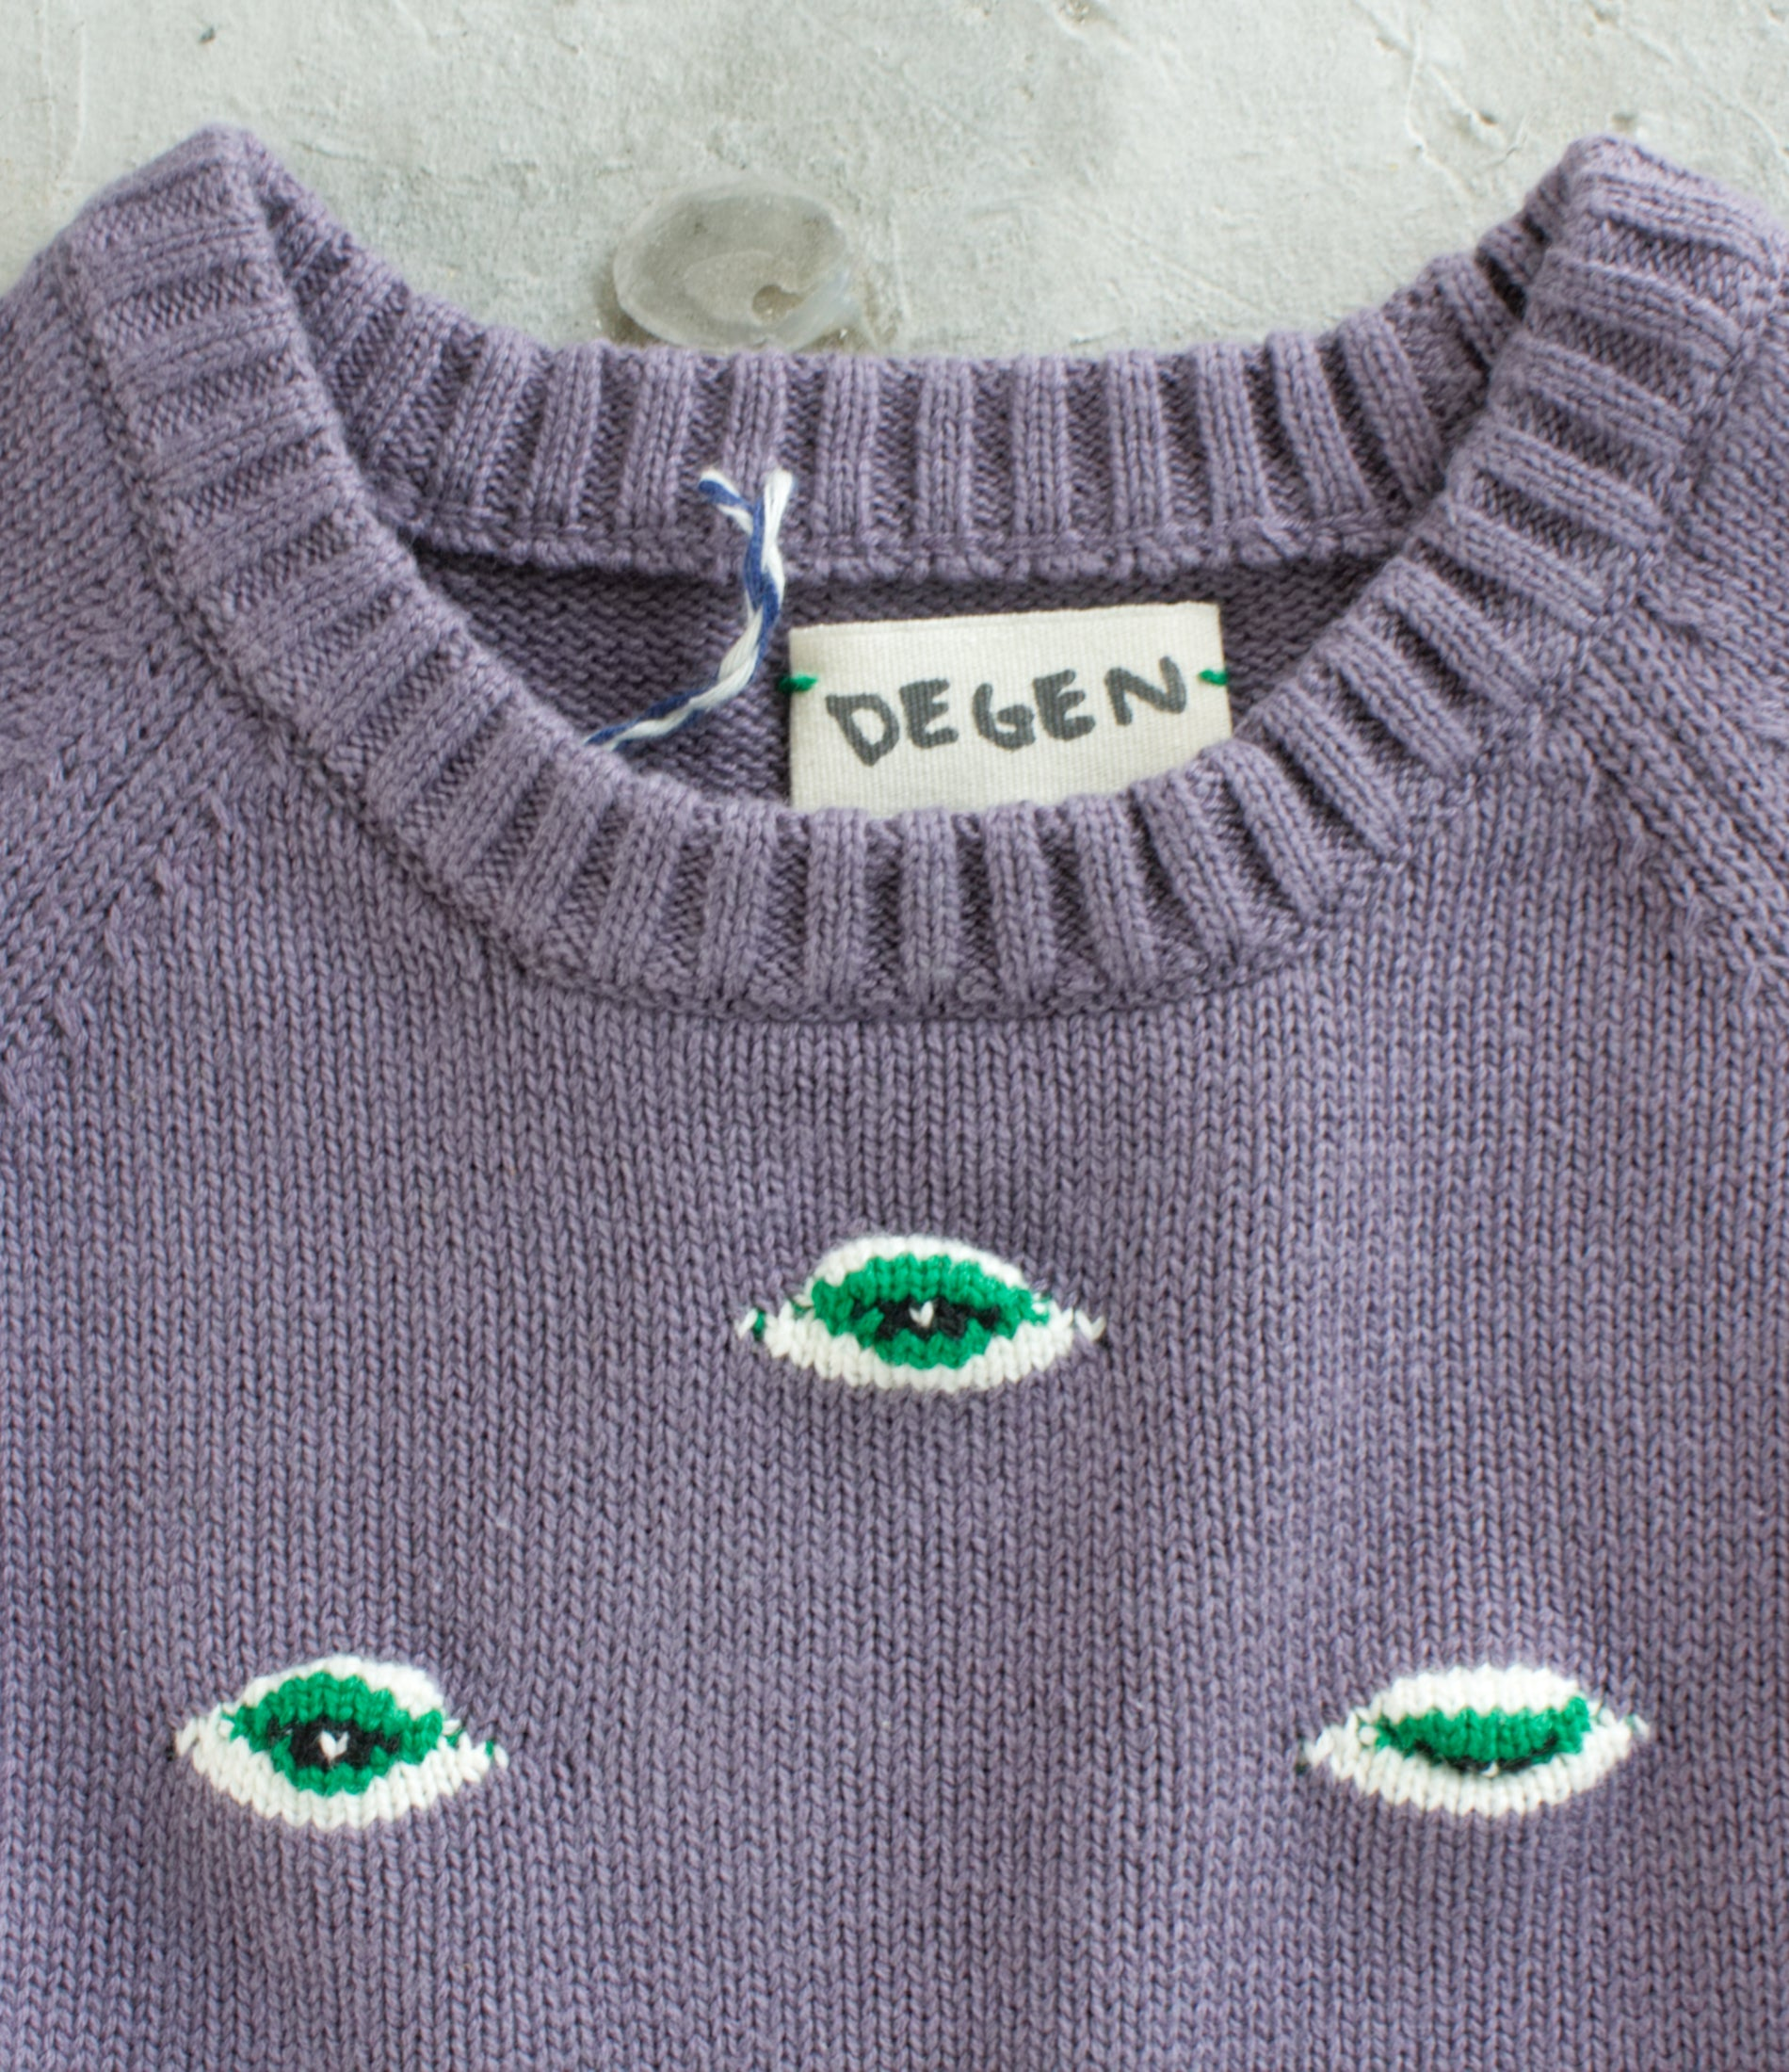 Purple Durple Eyez Sweater